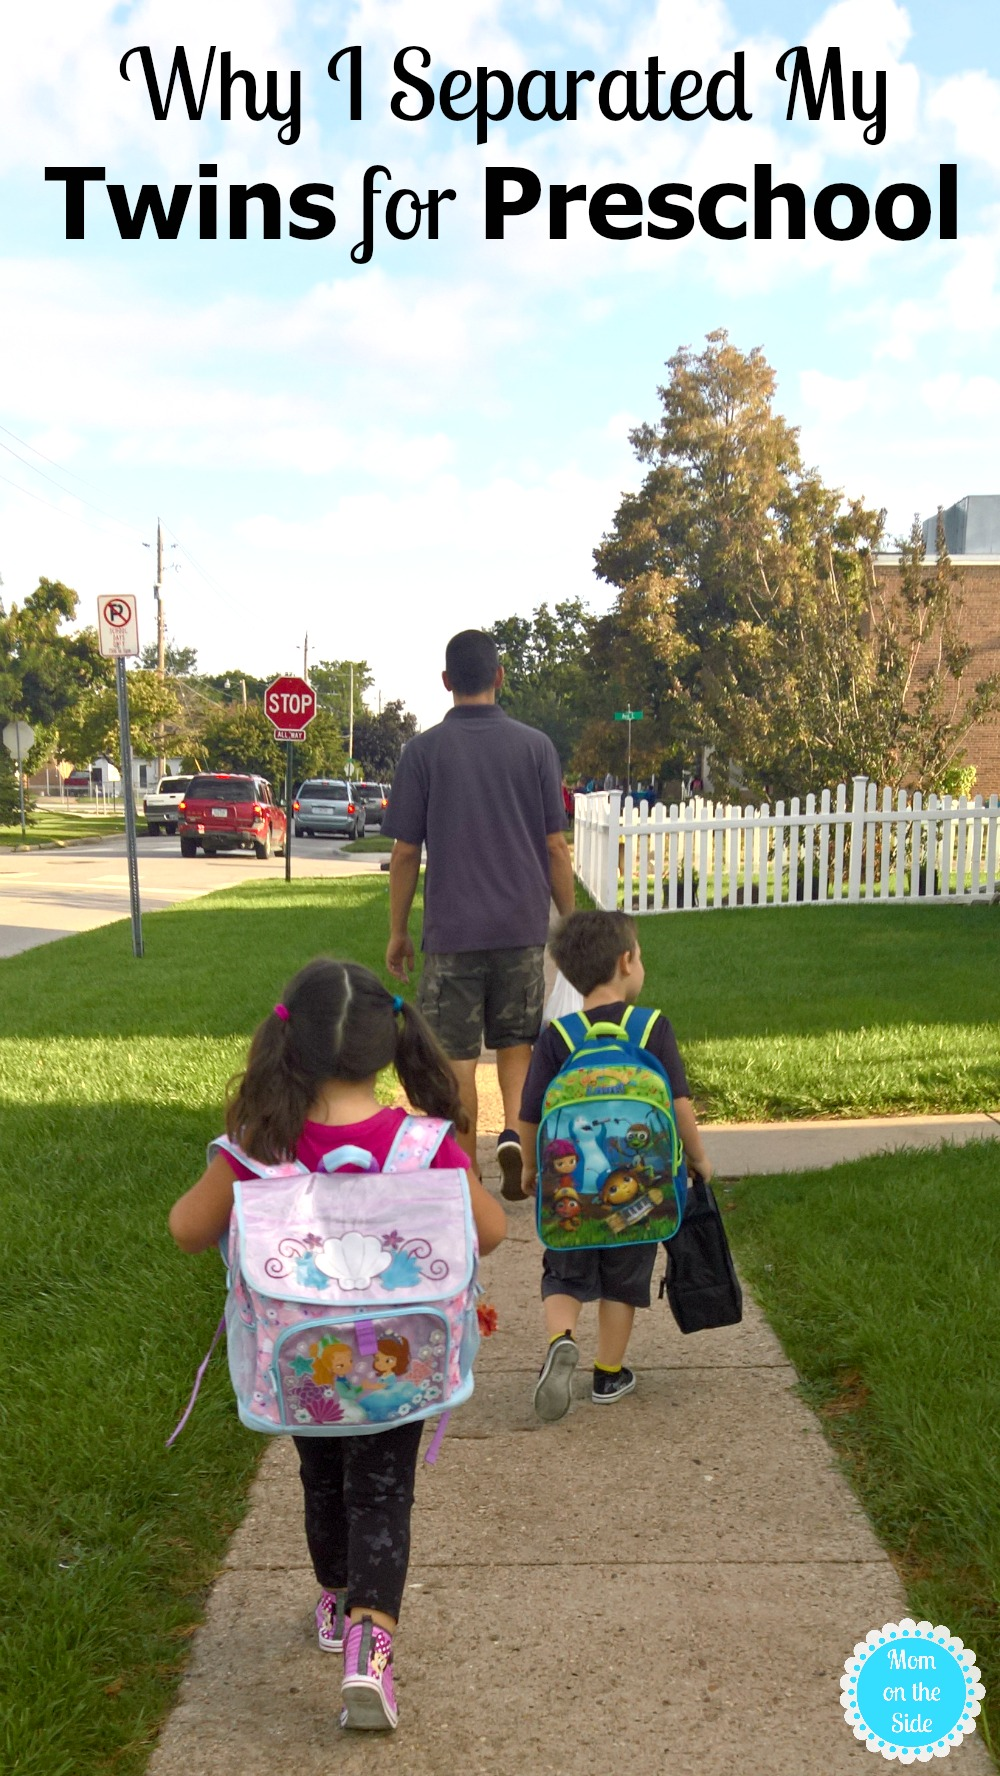 As a mom of twins, whether or not to separate twins for preschool is no easy decision. It's something I started thinking about a year before my twins started school and here's why I separated my twins for preschool.